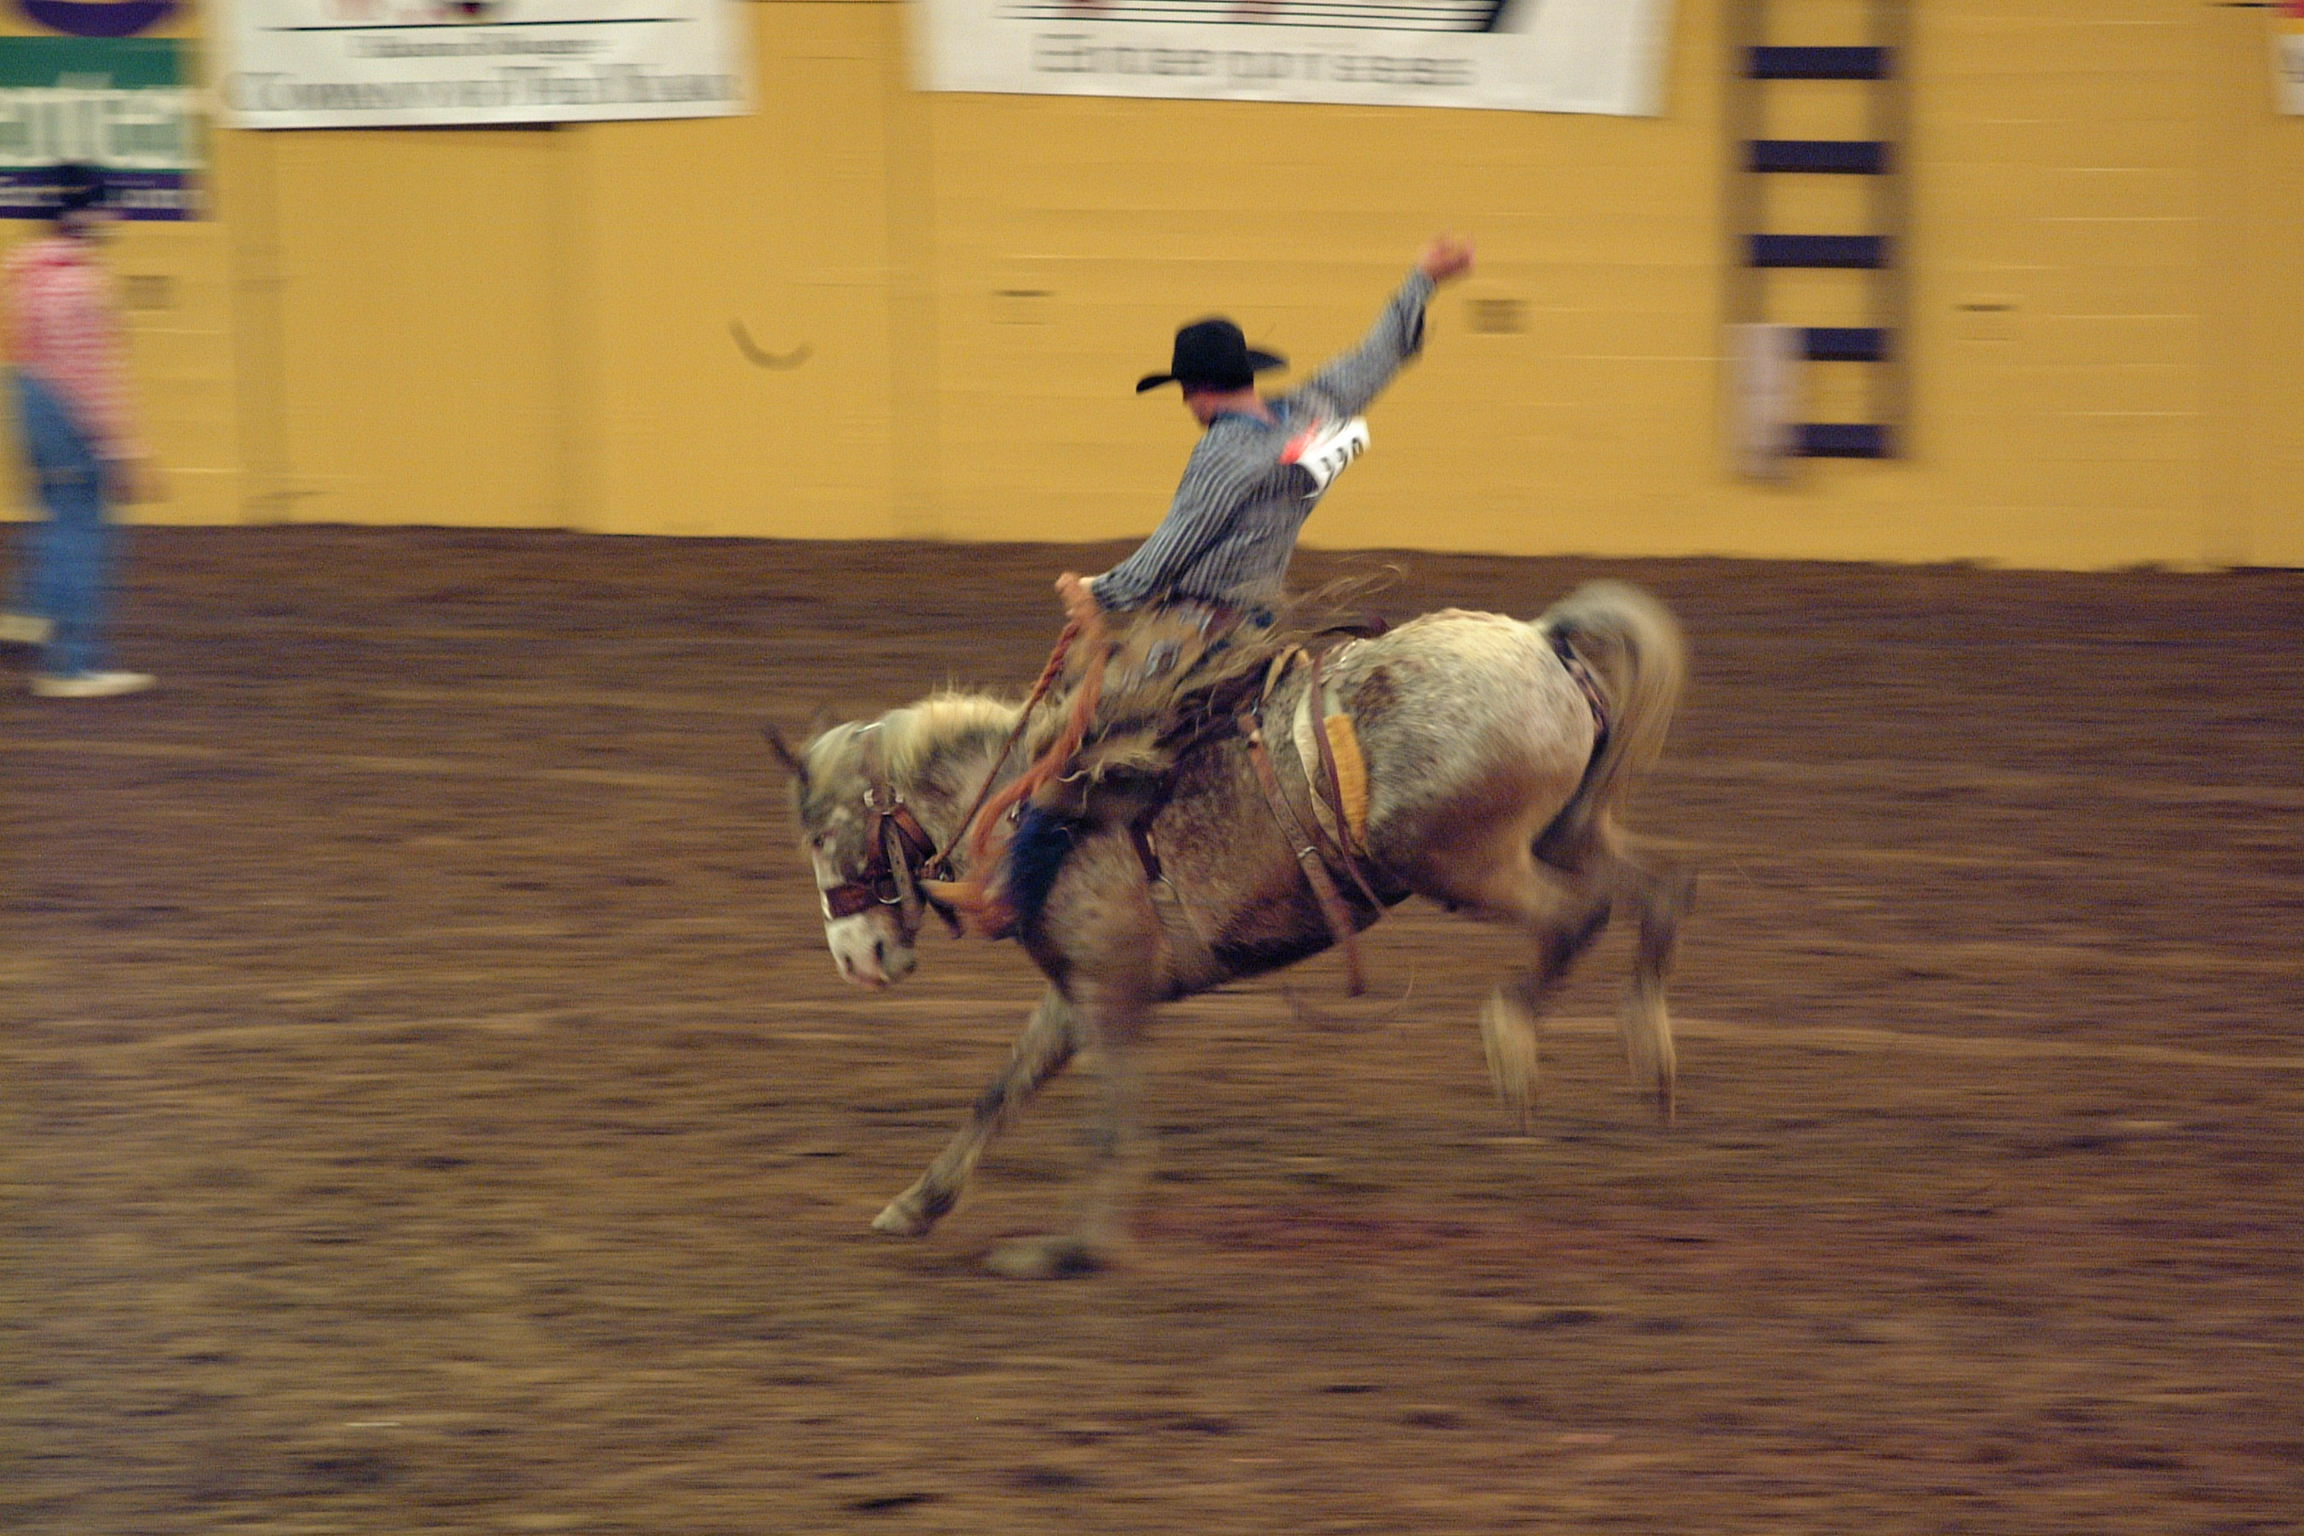 79th annual Block and Bridle rodeo set for Oct. 7, 8